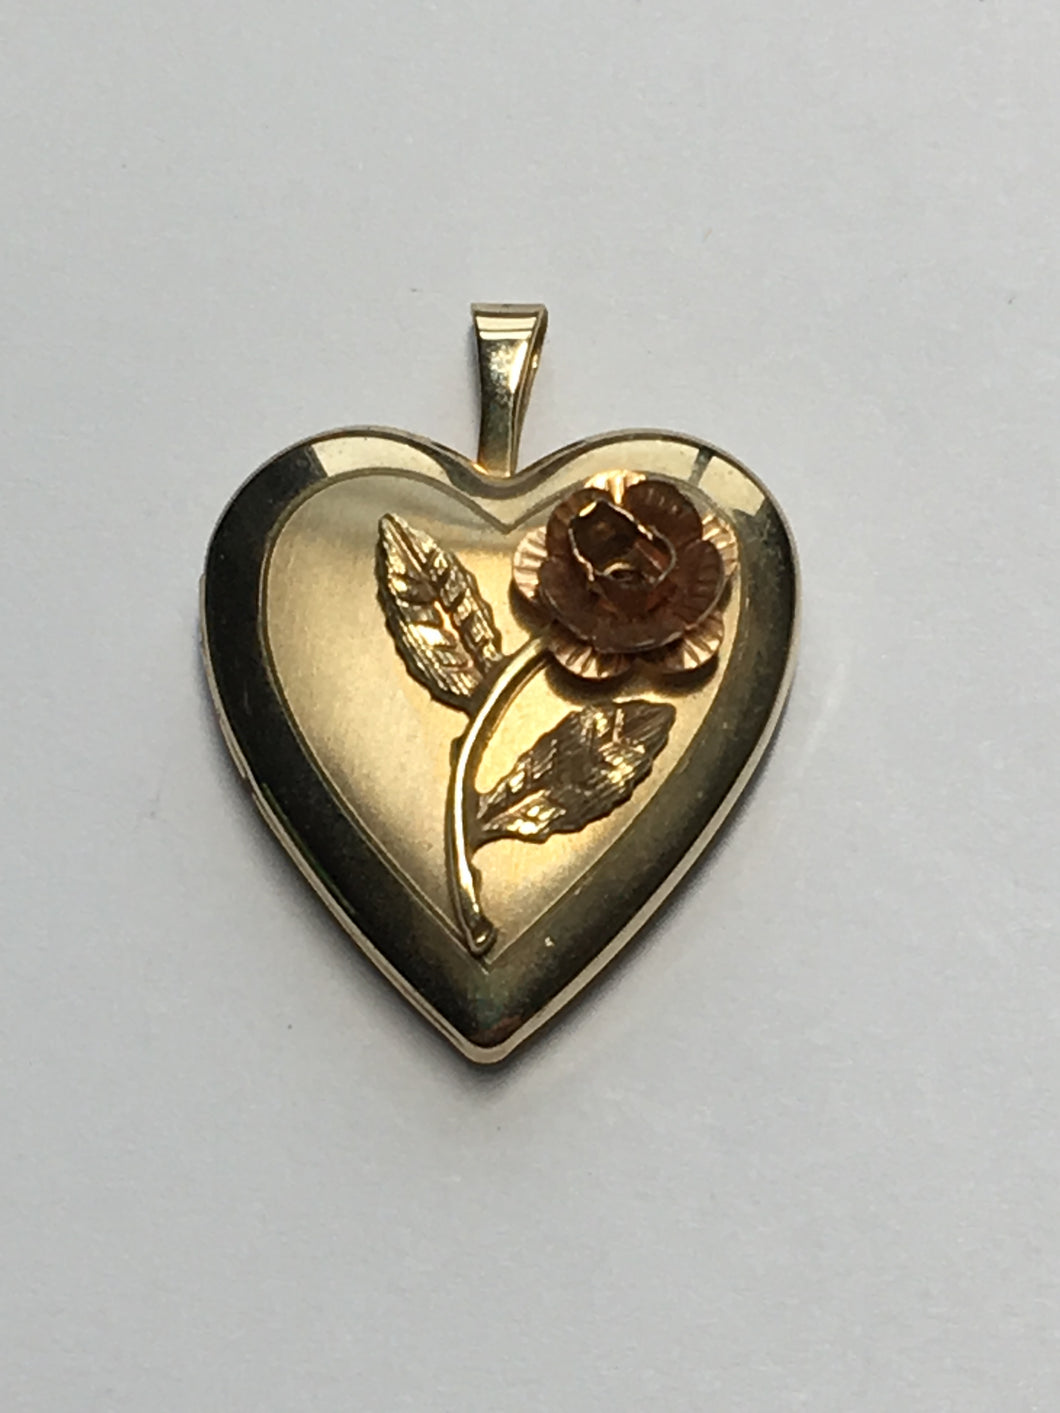 14 Karat Gold Filled Picture Locket with Rose, 25 x 19 x 5 mm, Excellent Condition - Never Worn